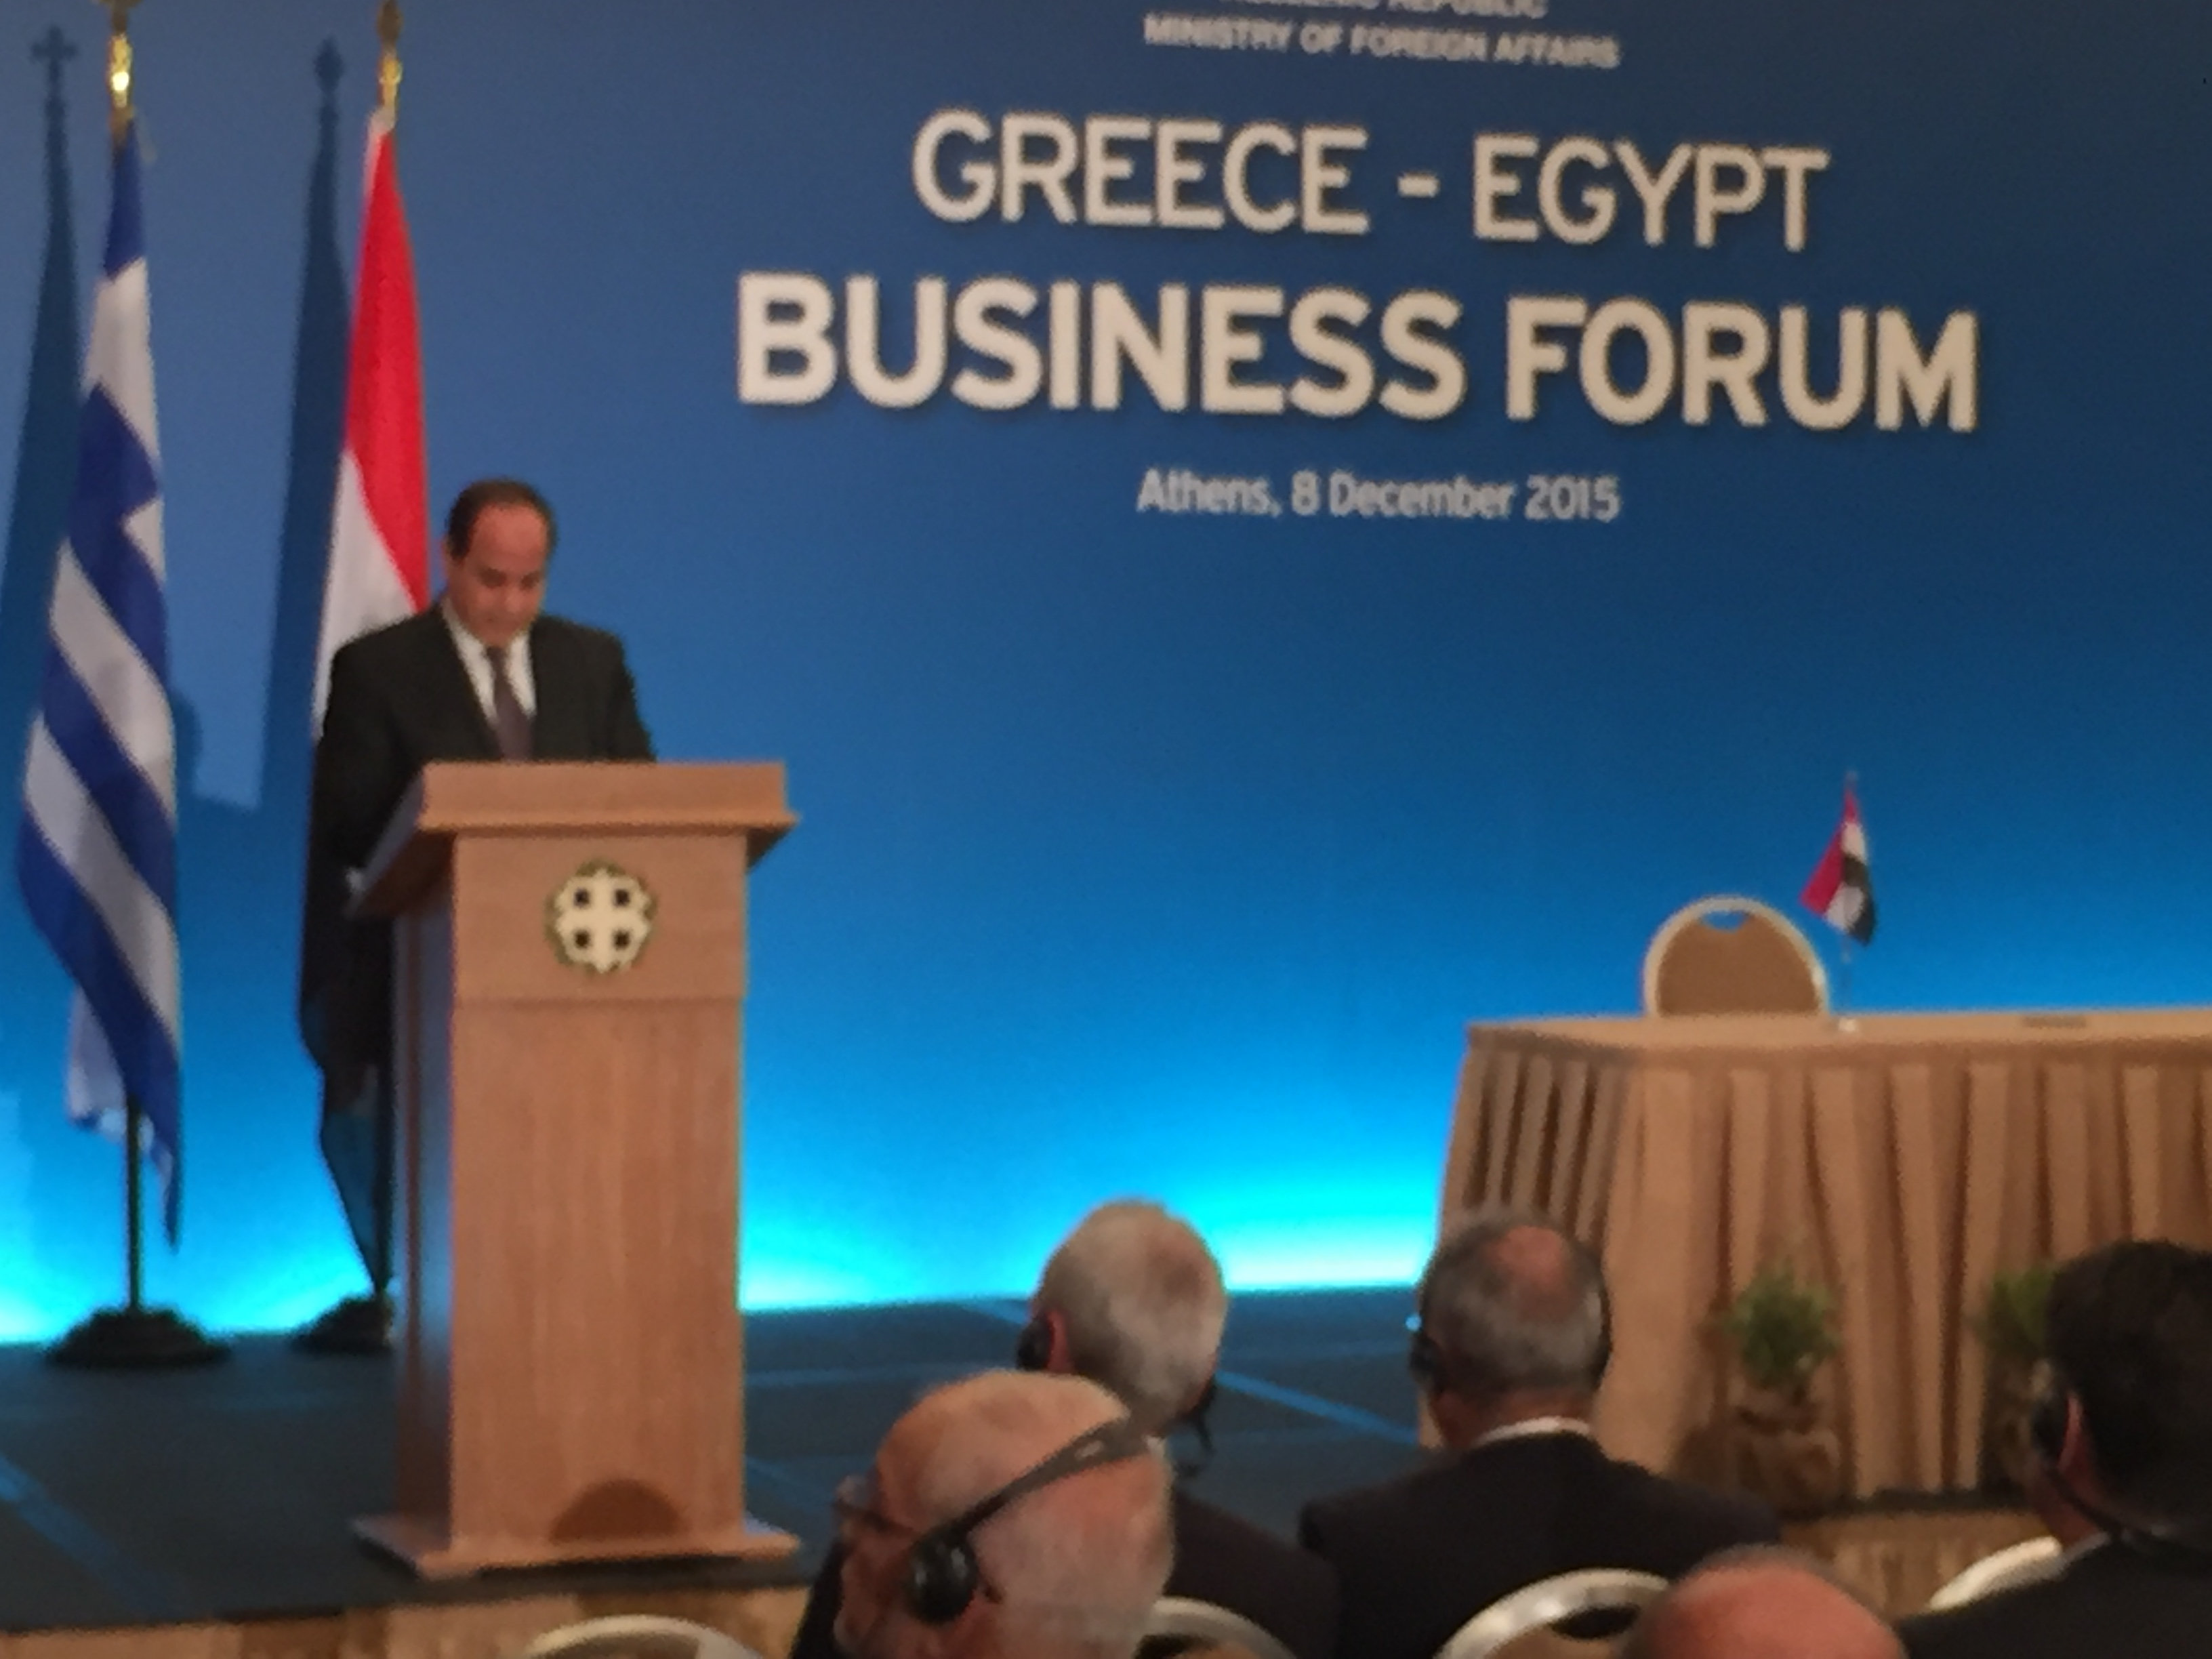 Tsipras – Al Sisi meeting with energy, construction, infrastructure, collaboration Greece-Egypt in the agenda